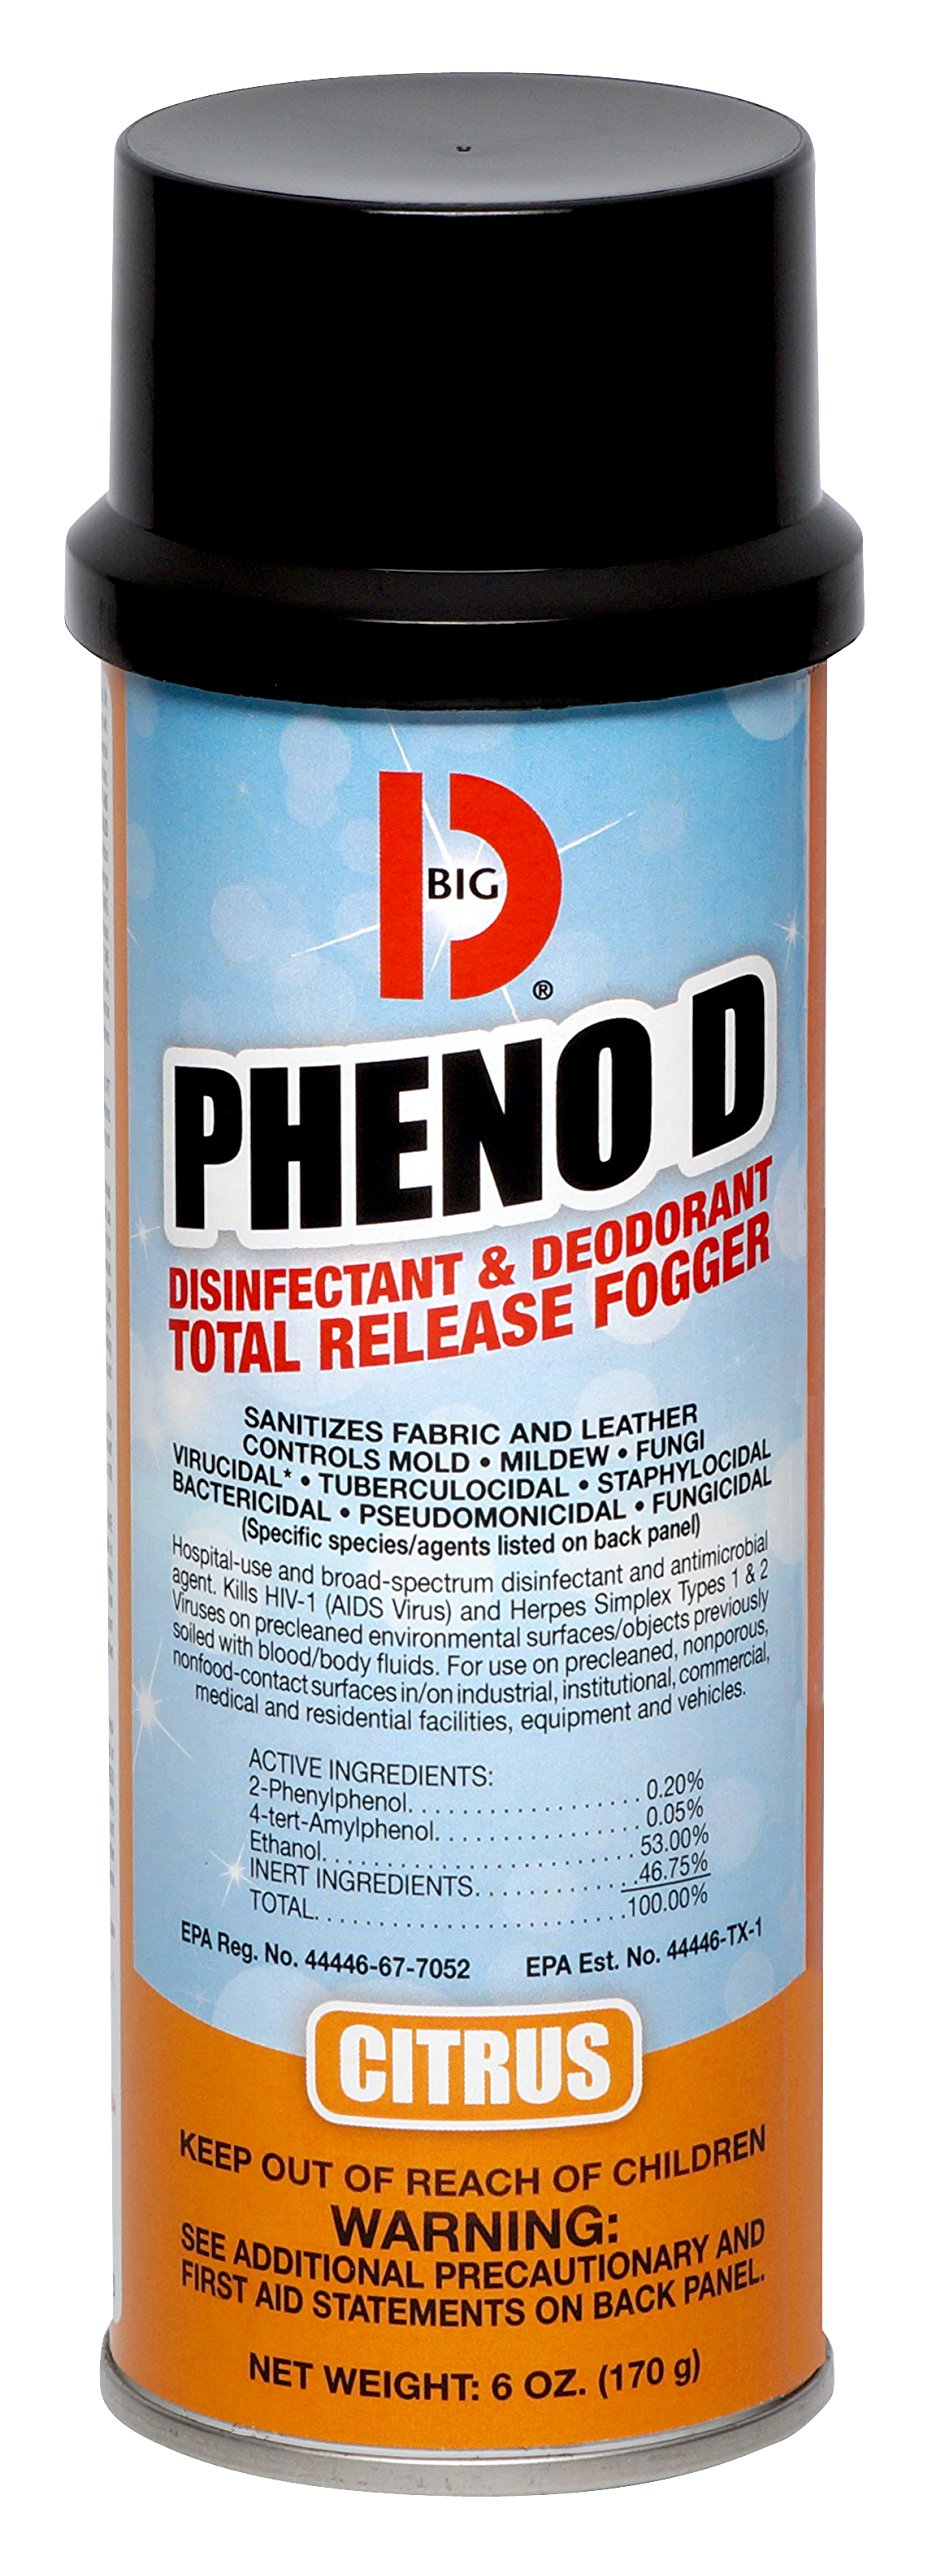 Big D 337 Pheno D Disinfectant & Deodorant Total Release Fogger, Citrus Fragrance, 6 oz (Pack of 12) - Kills harmful viruses, bacteria, fungi, mold, mildew - Ideal for schools, gyms, healthcare facilities